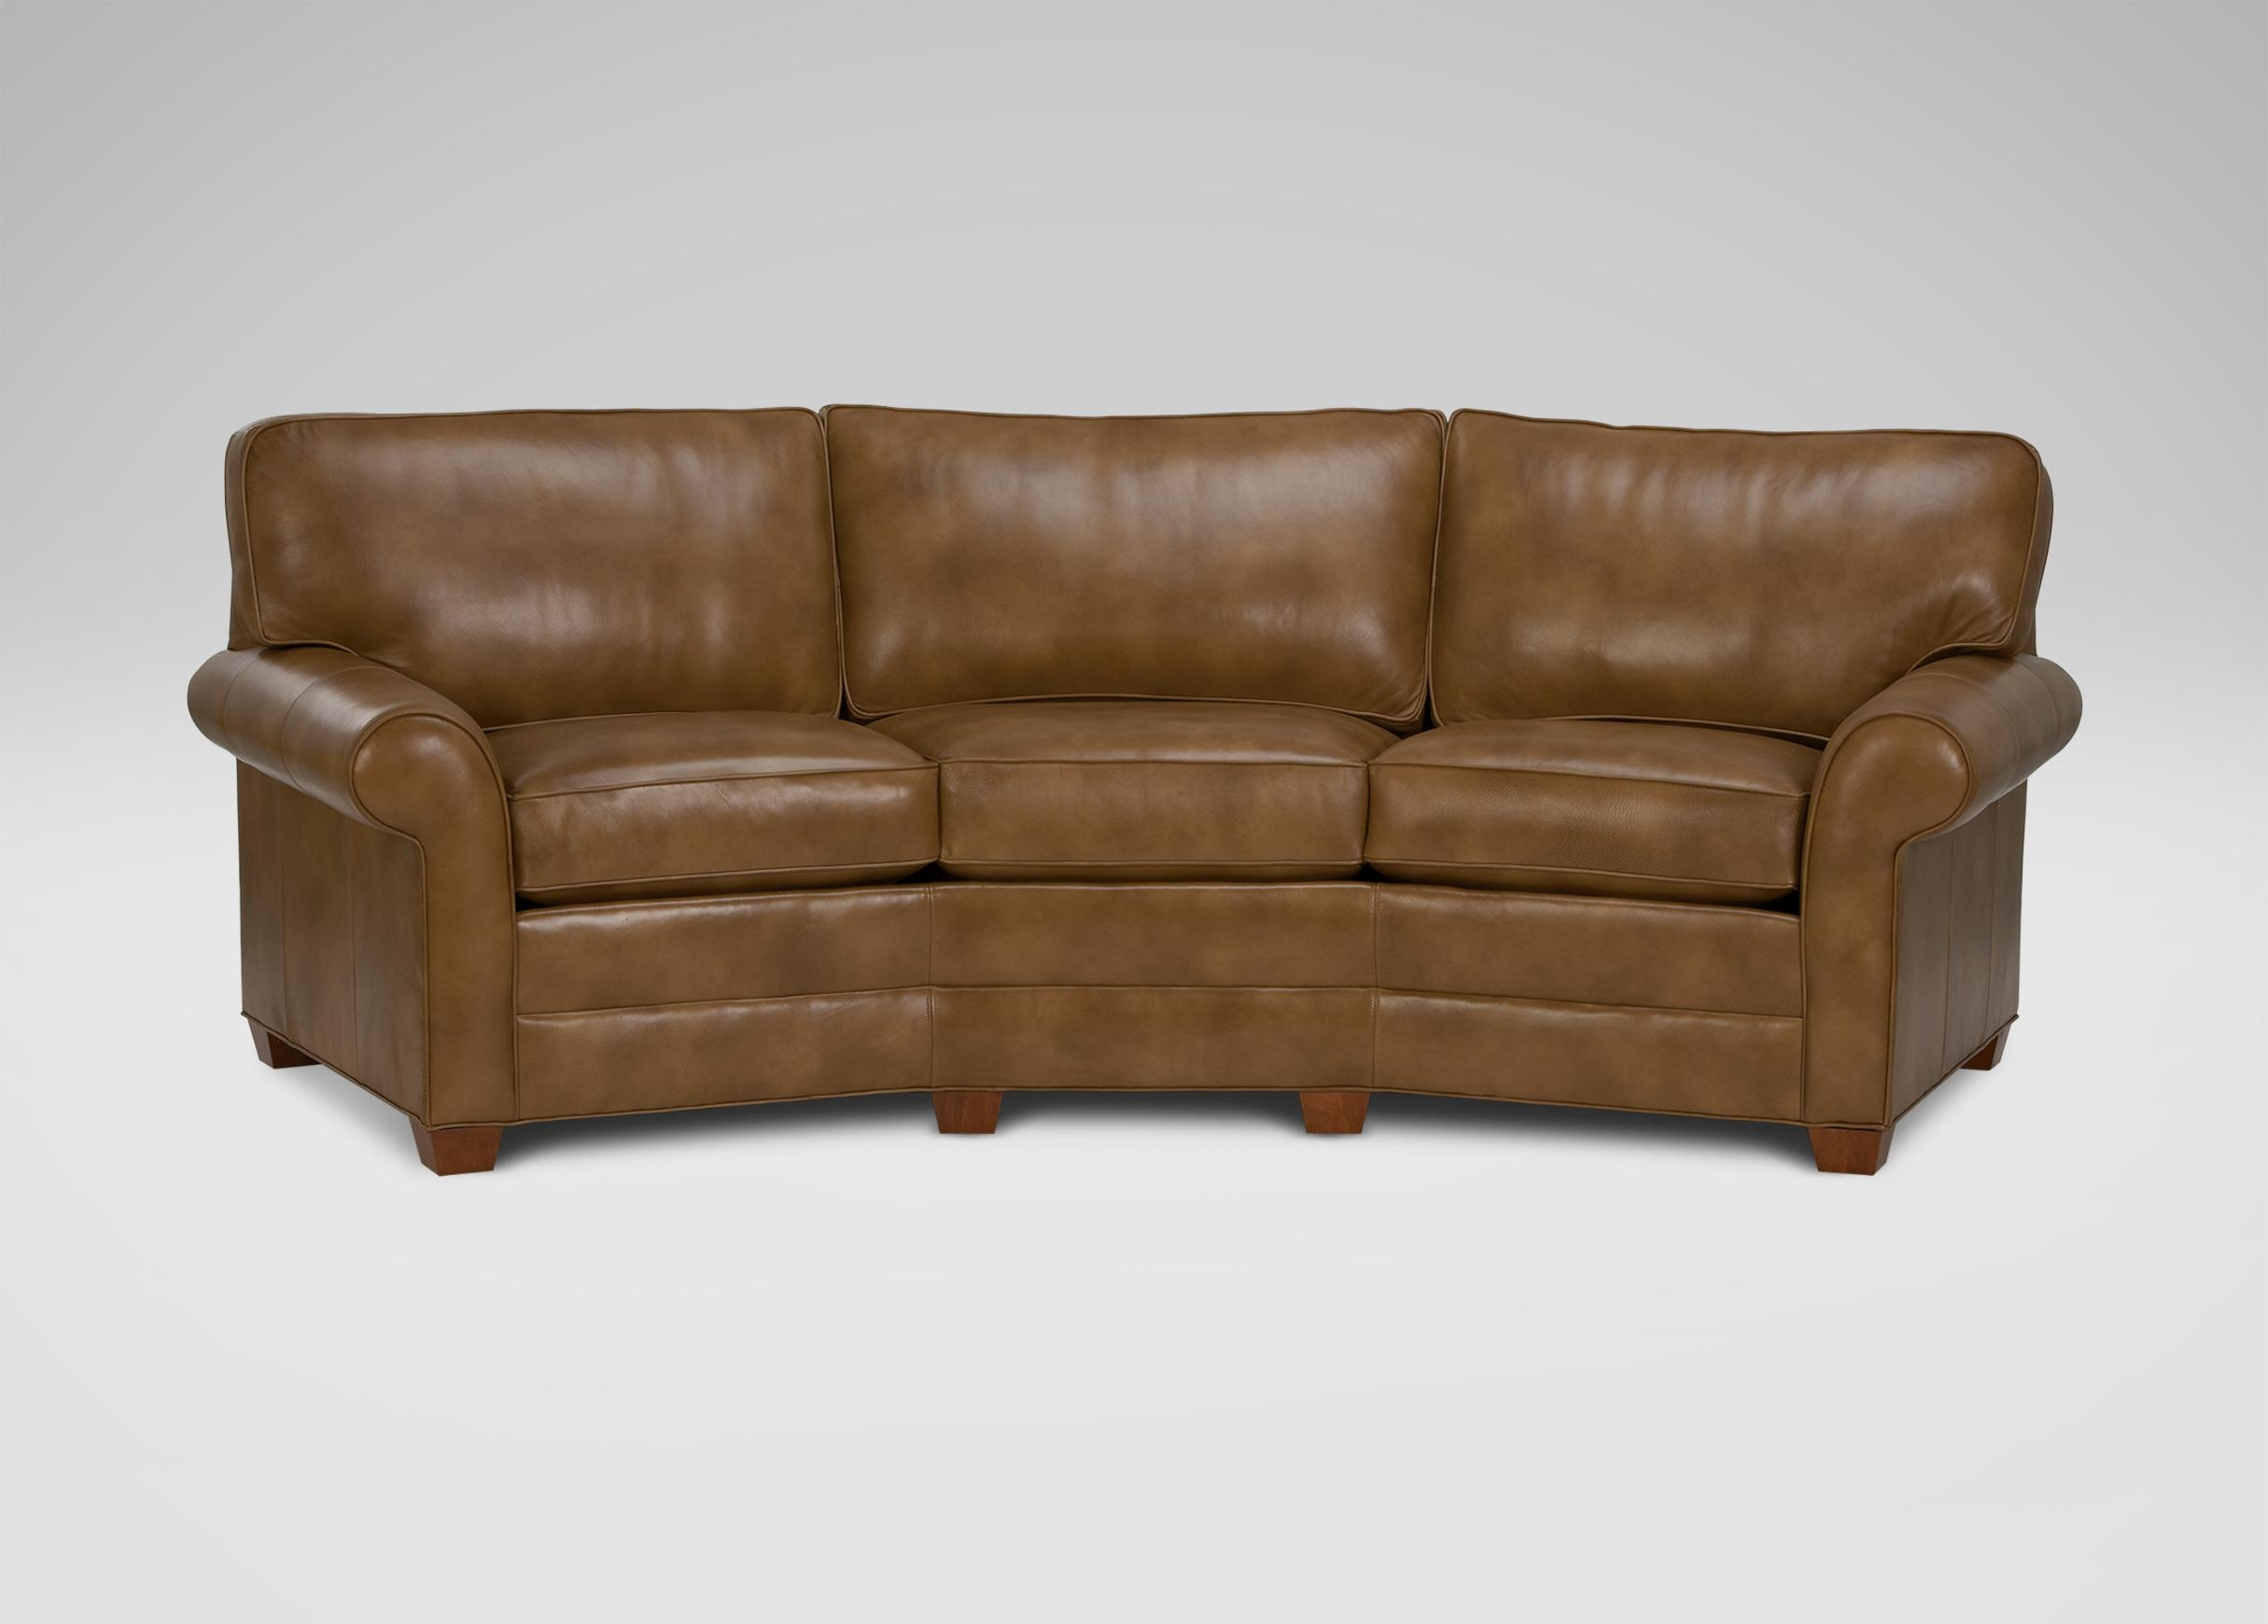 Storage Chesterfield Sofa Ethan Allen Leather Furniture Ethan Inside Ethan Allen Chesterfield Sofas (Image 13 of 20)